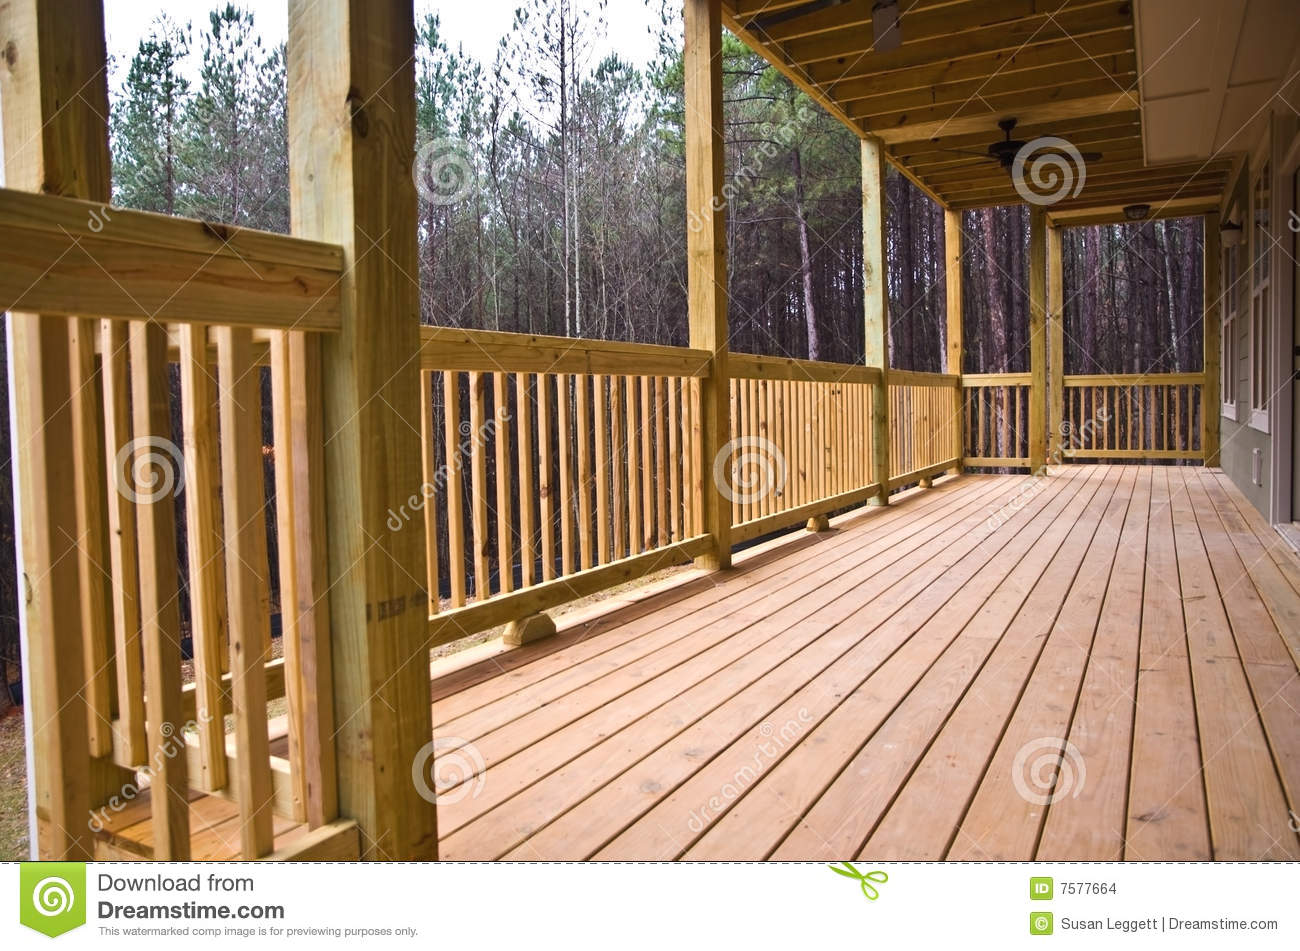 Wood Deck Porch On House Stock Images   Image  7577664